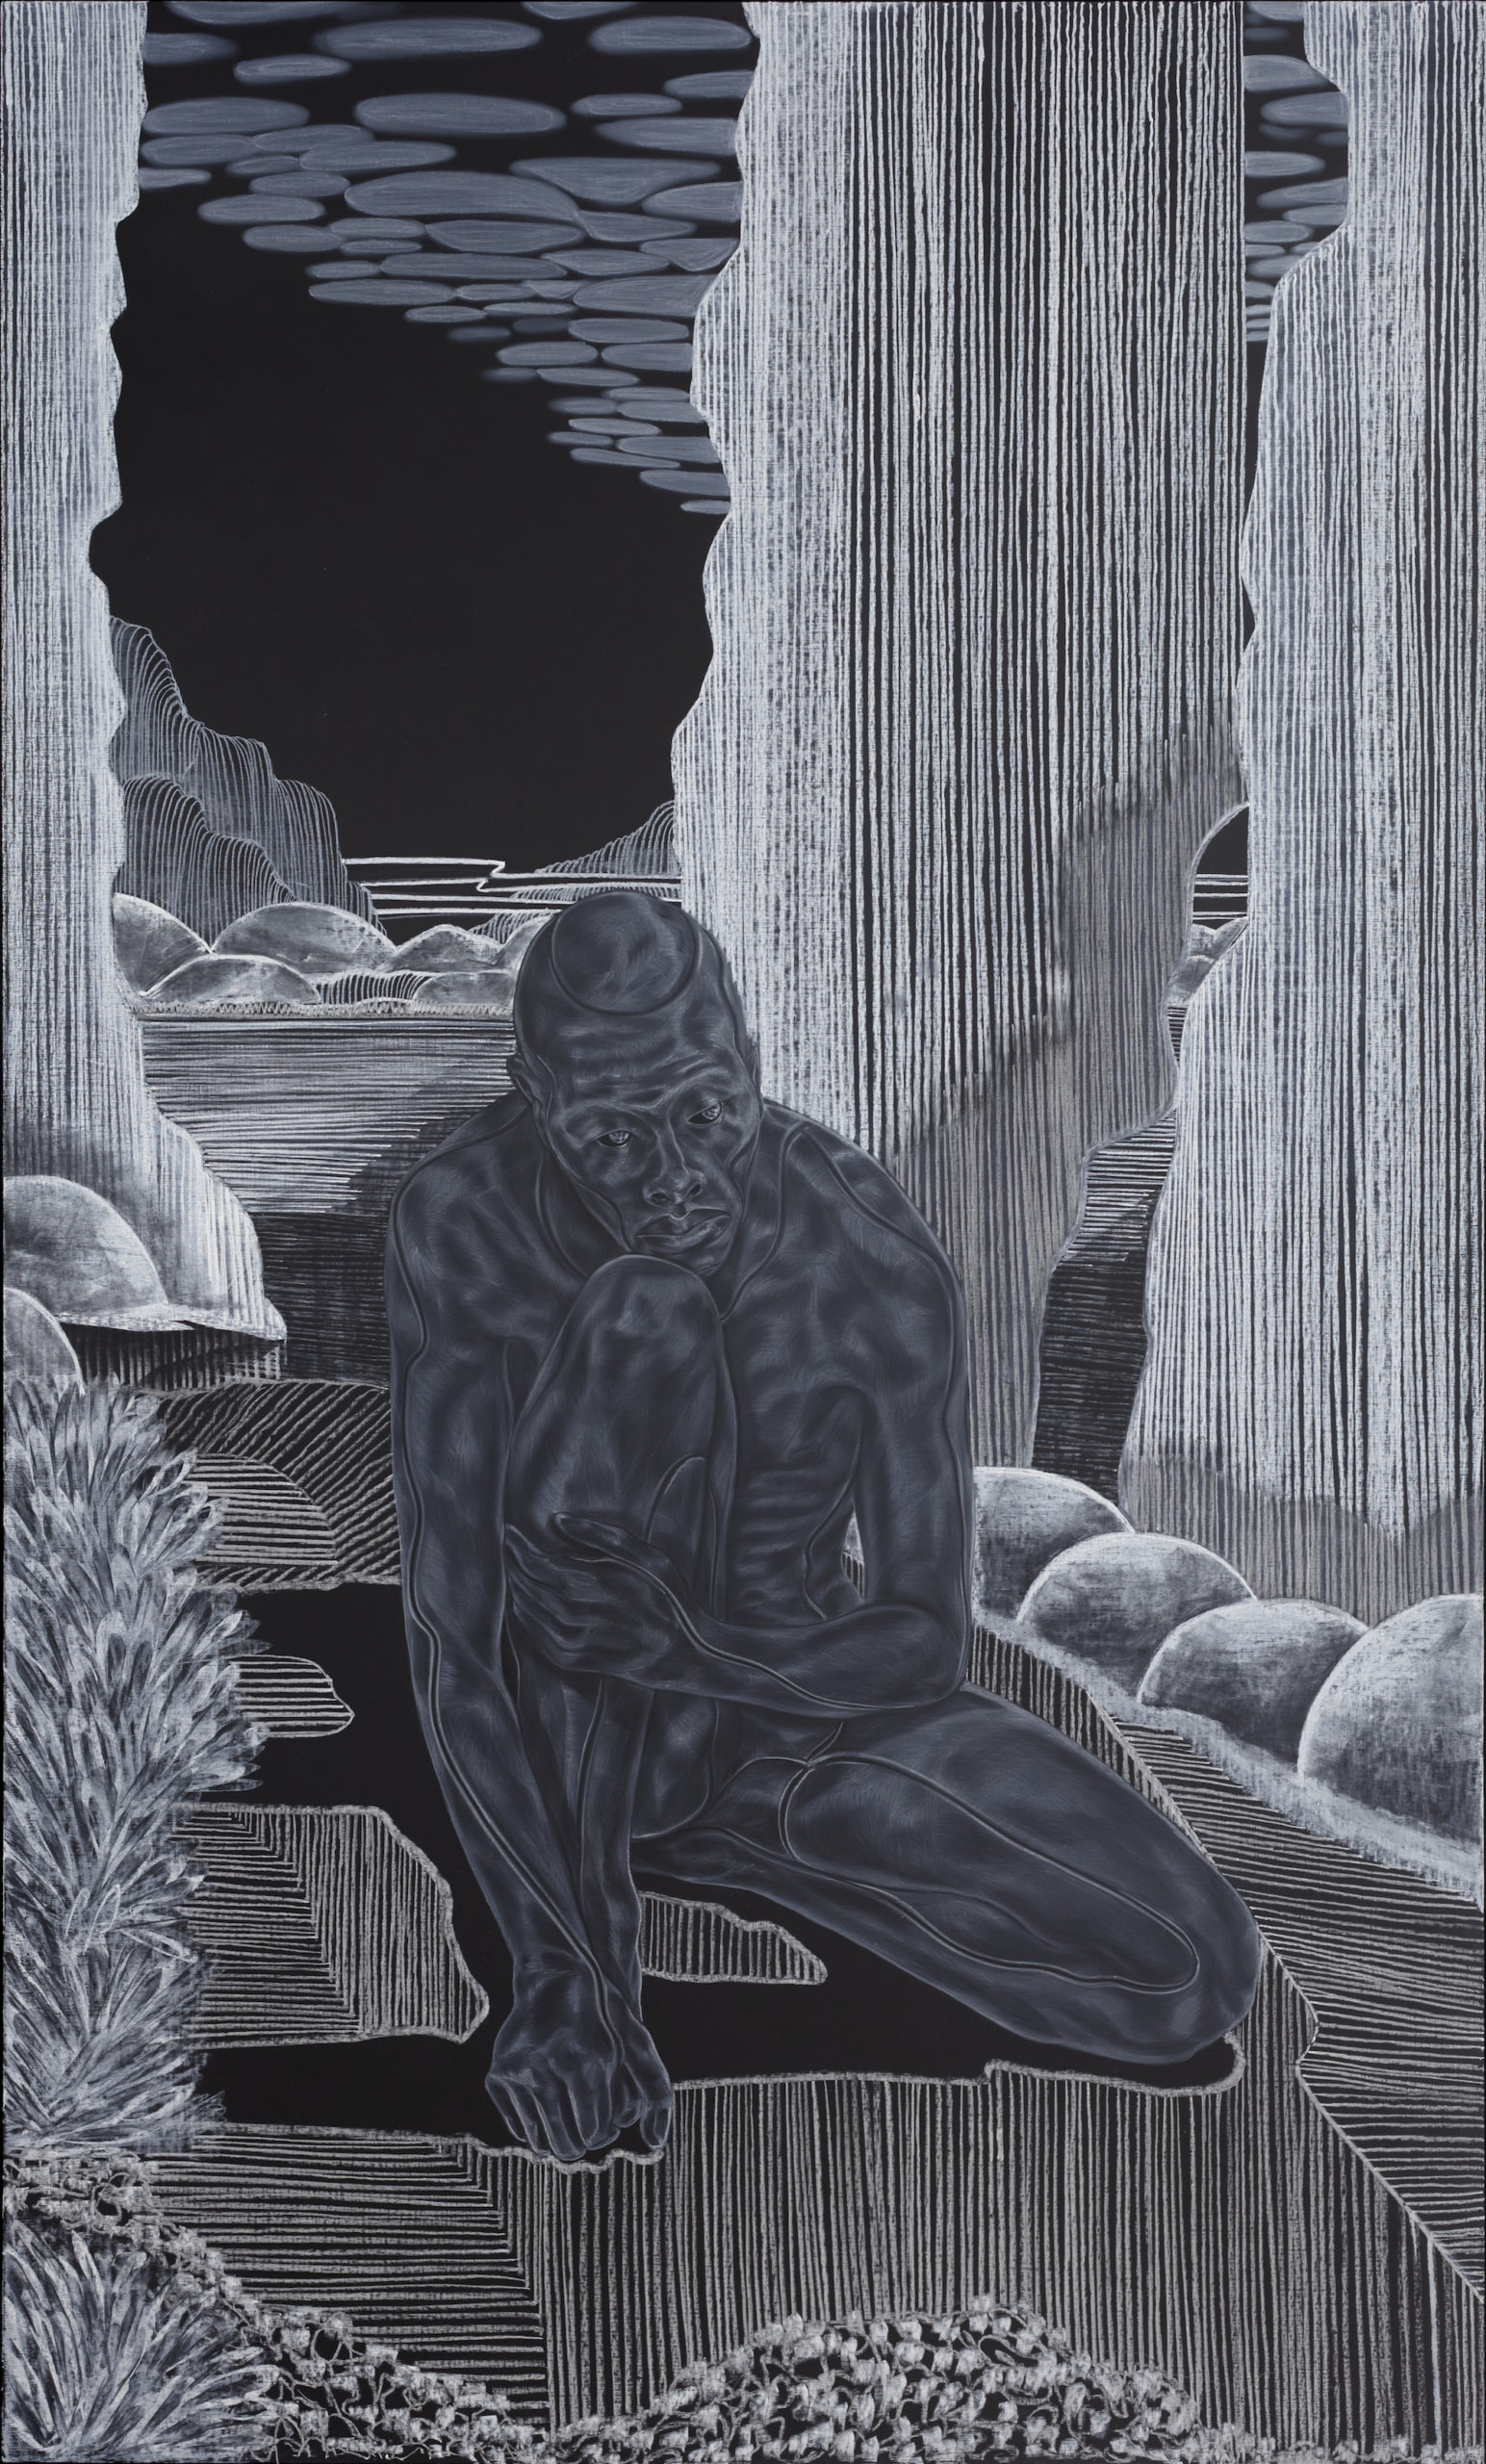 Introductions: Early Embodiment from A Countervailing Theory (2019) © Toyin Ojih Odutola. Courtesy of the artist and Jack Shainman Gallery, New York